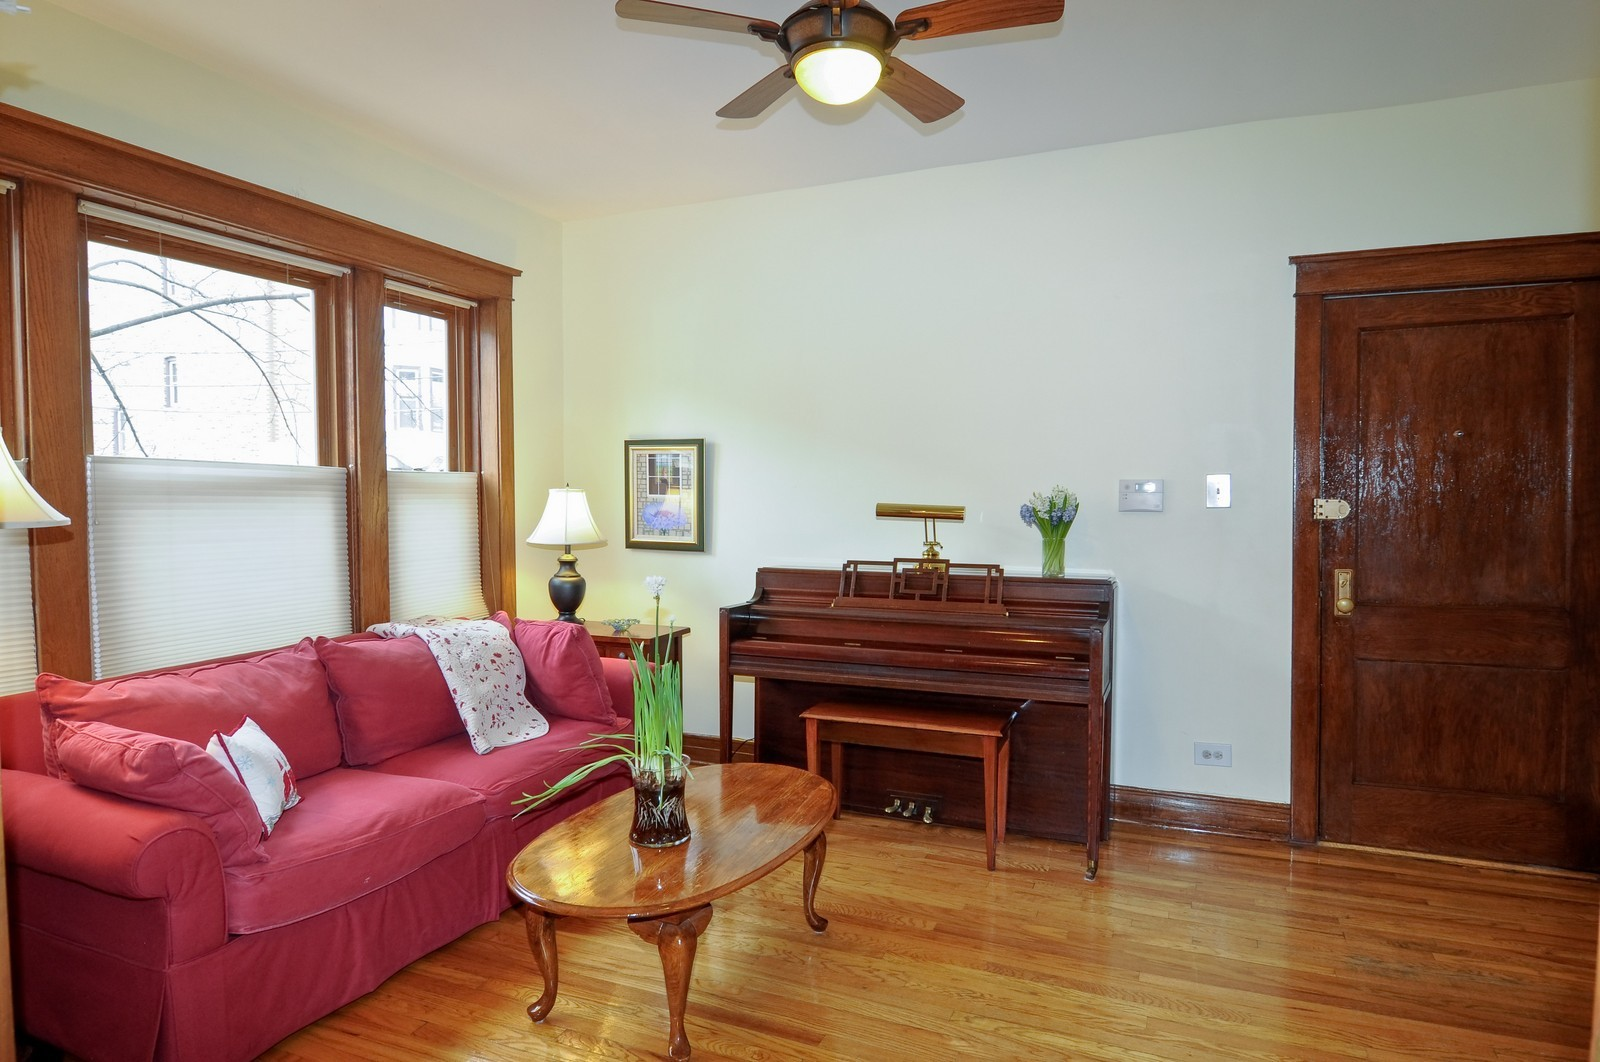 Real Estate Photography - 2548 N Seminary, Apt 1, Chicago, IL, 60614 - Living Room